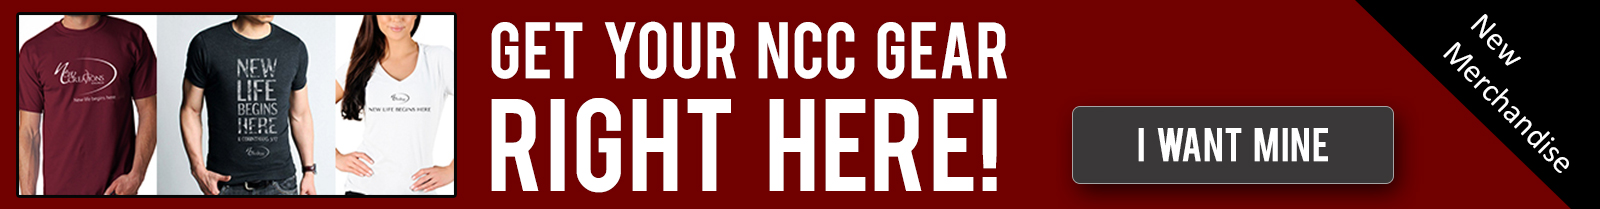 Get your NCC gear